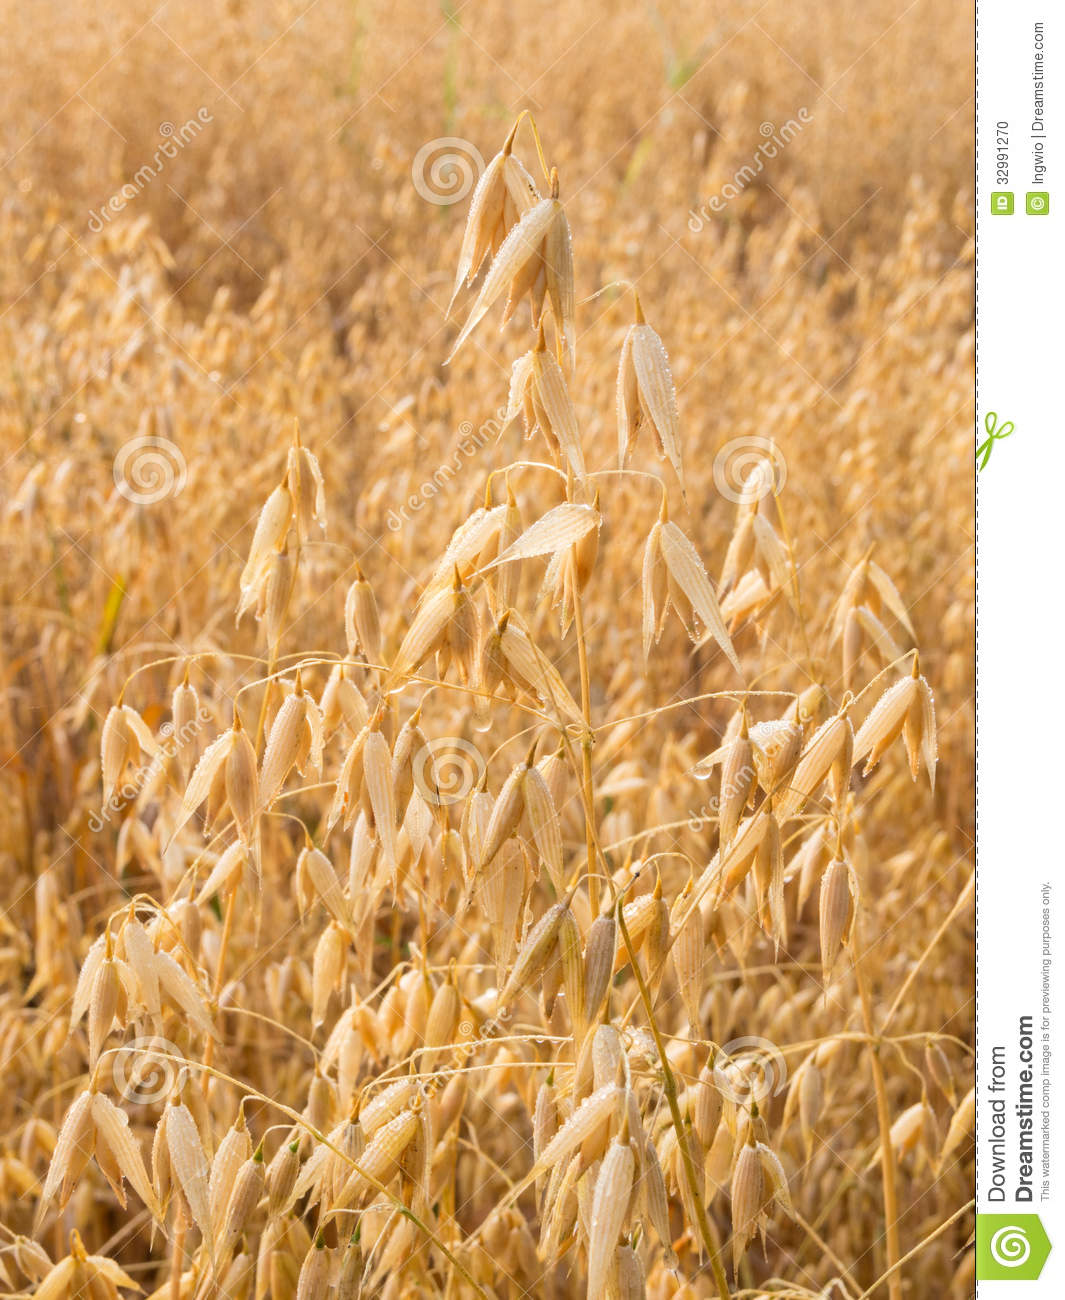 Oat Plant With Morning Dew Stock Photo - Image: 32991270